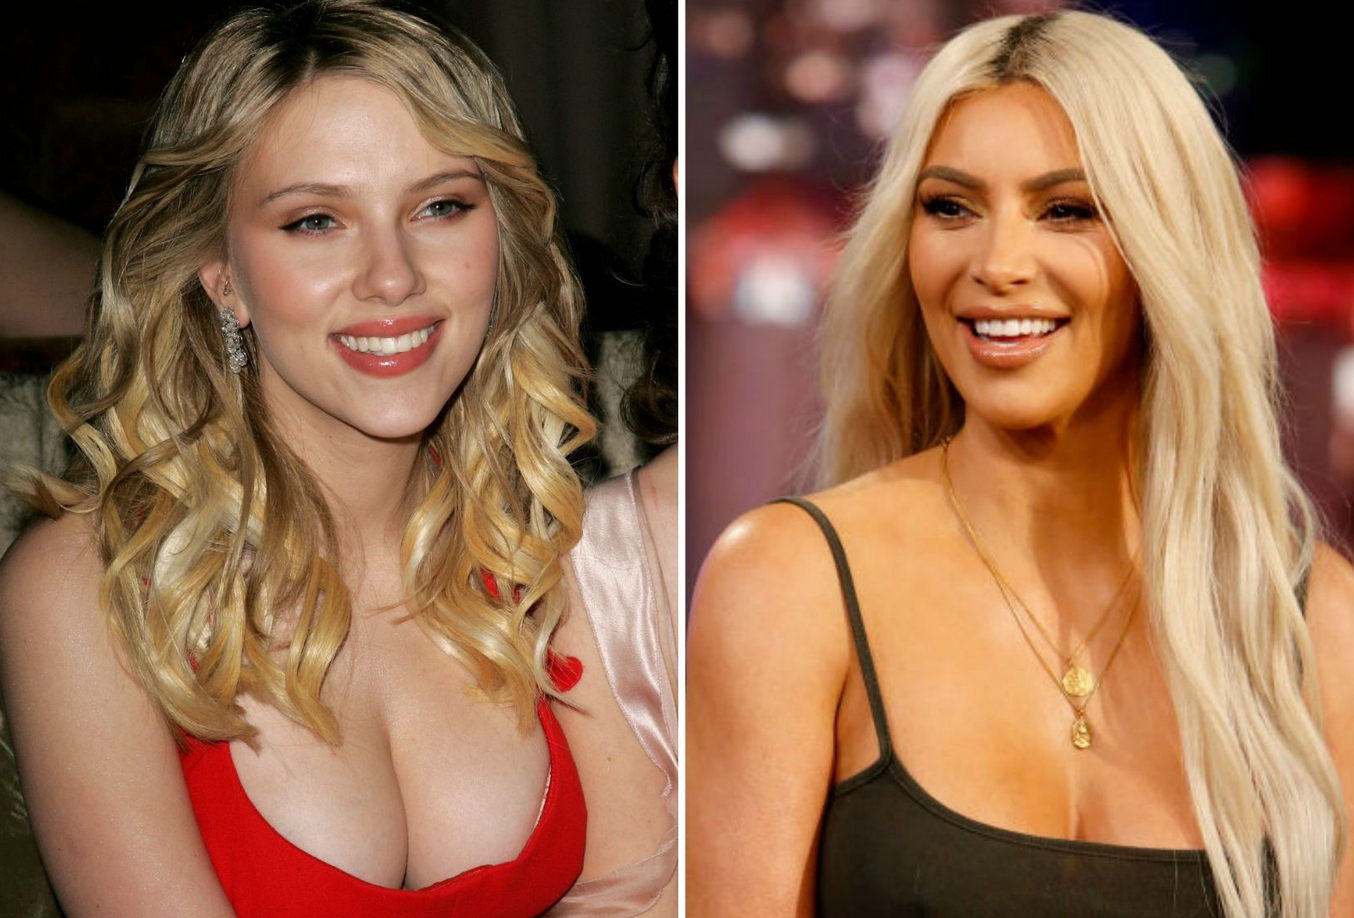 ScarJo and Kim K Top List of Celebs People Most Want to Have Sex With